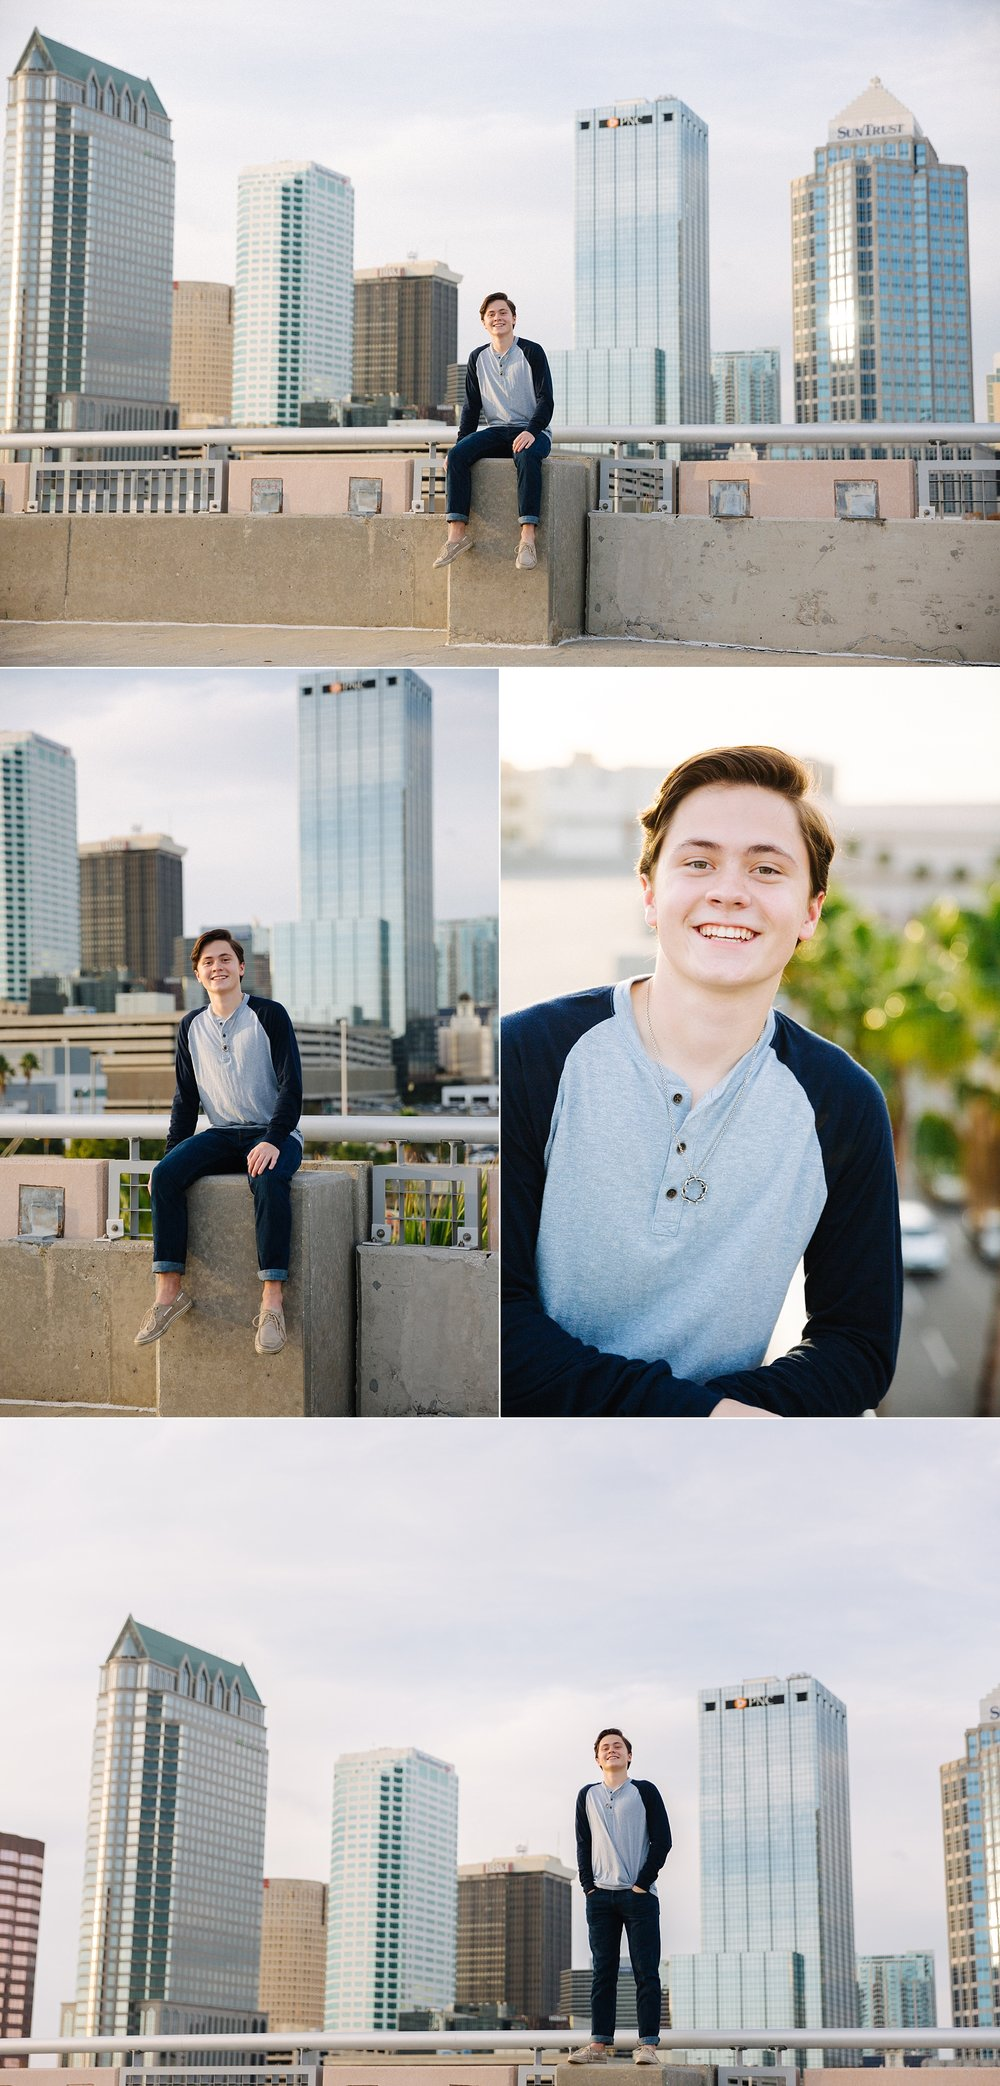 tampa senior portrait photographer jeremiah-6.jpg